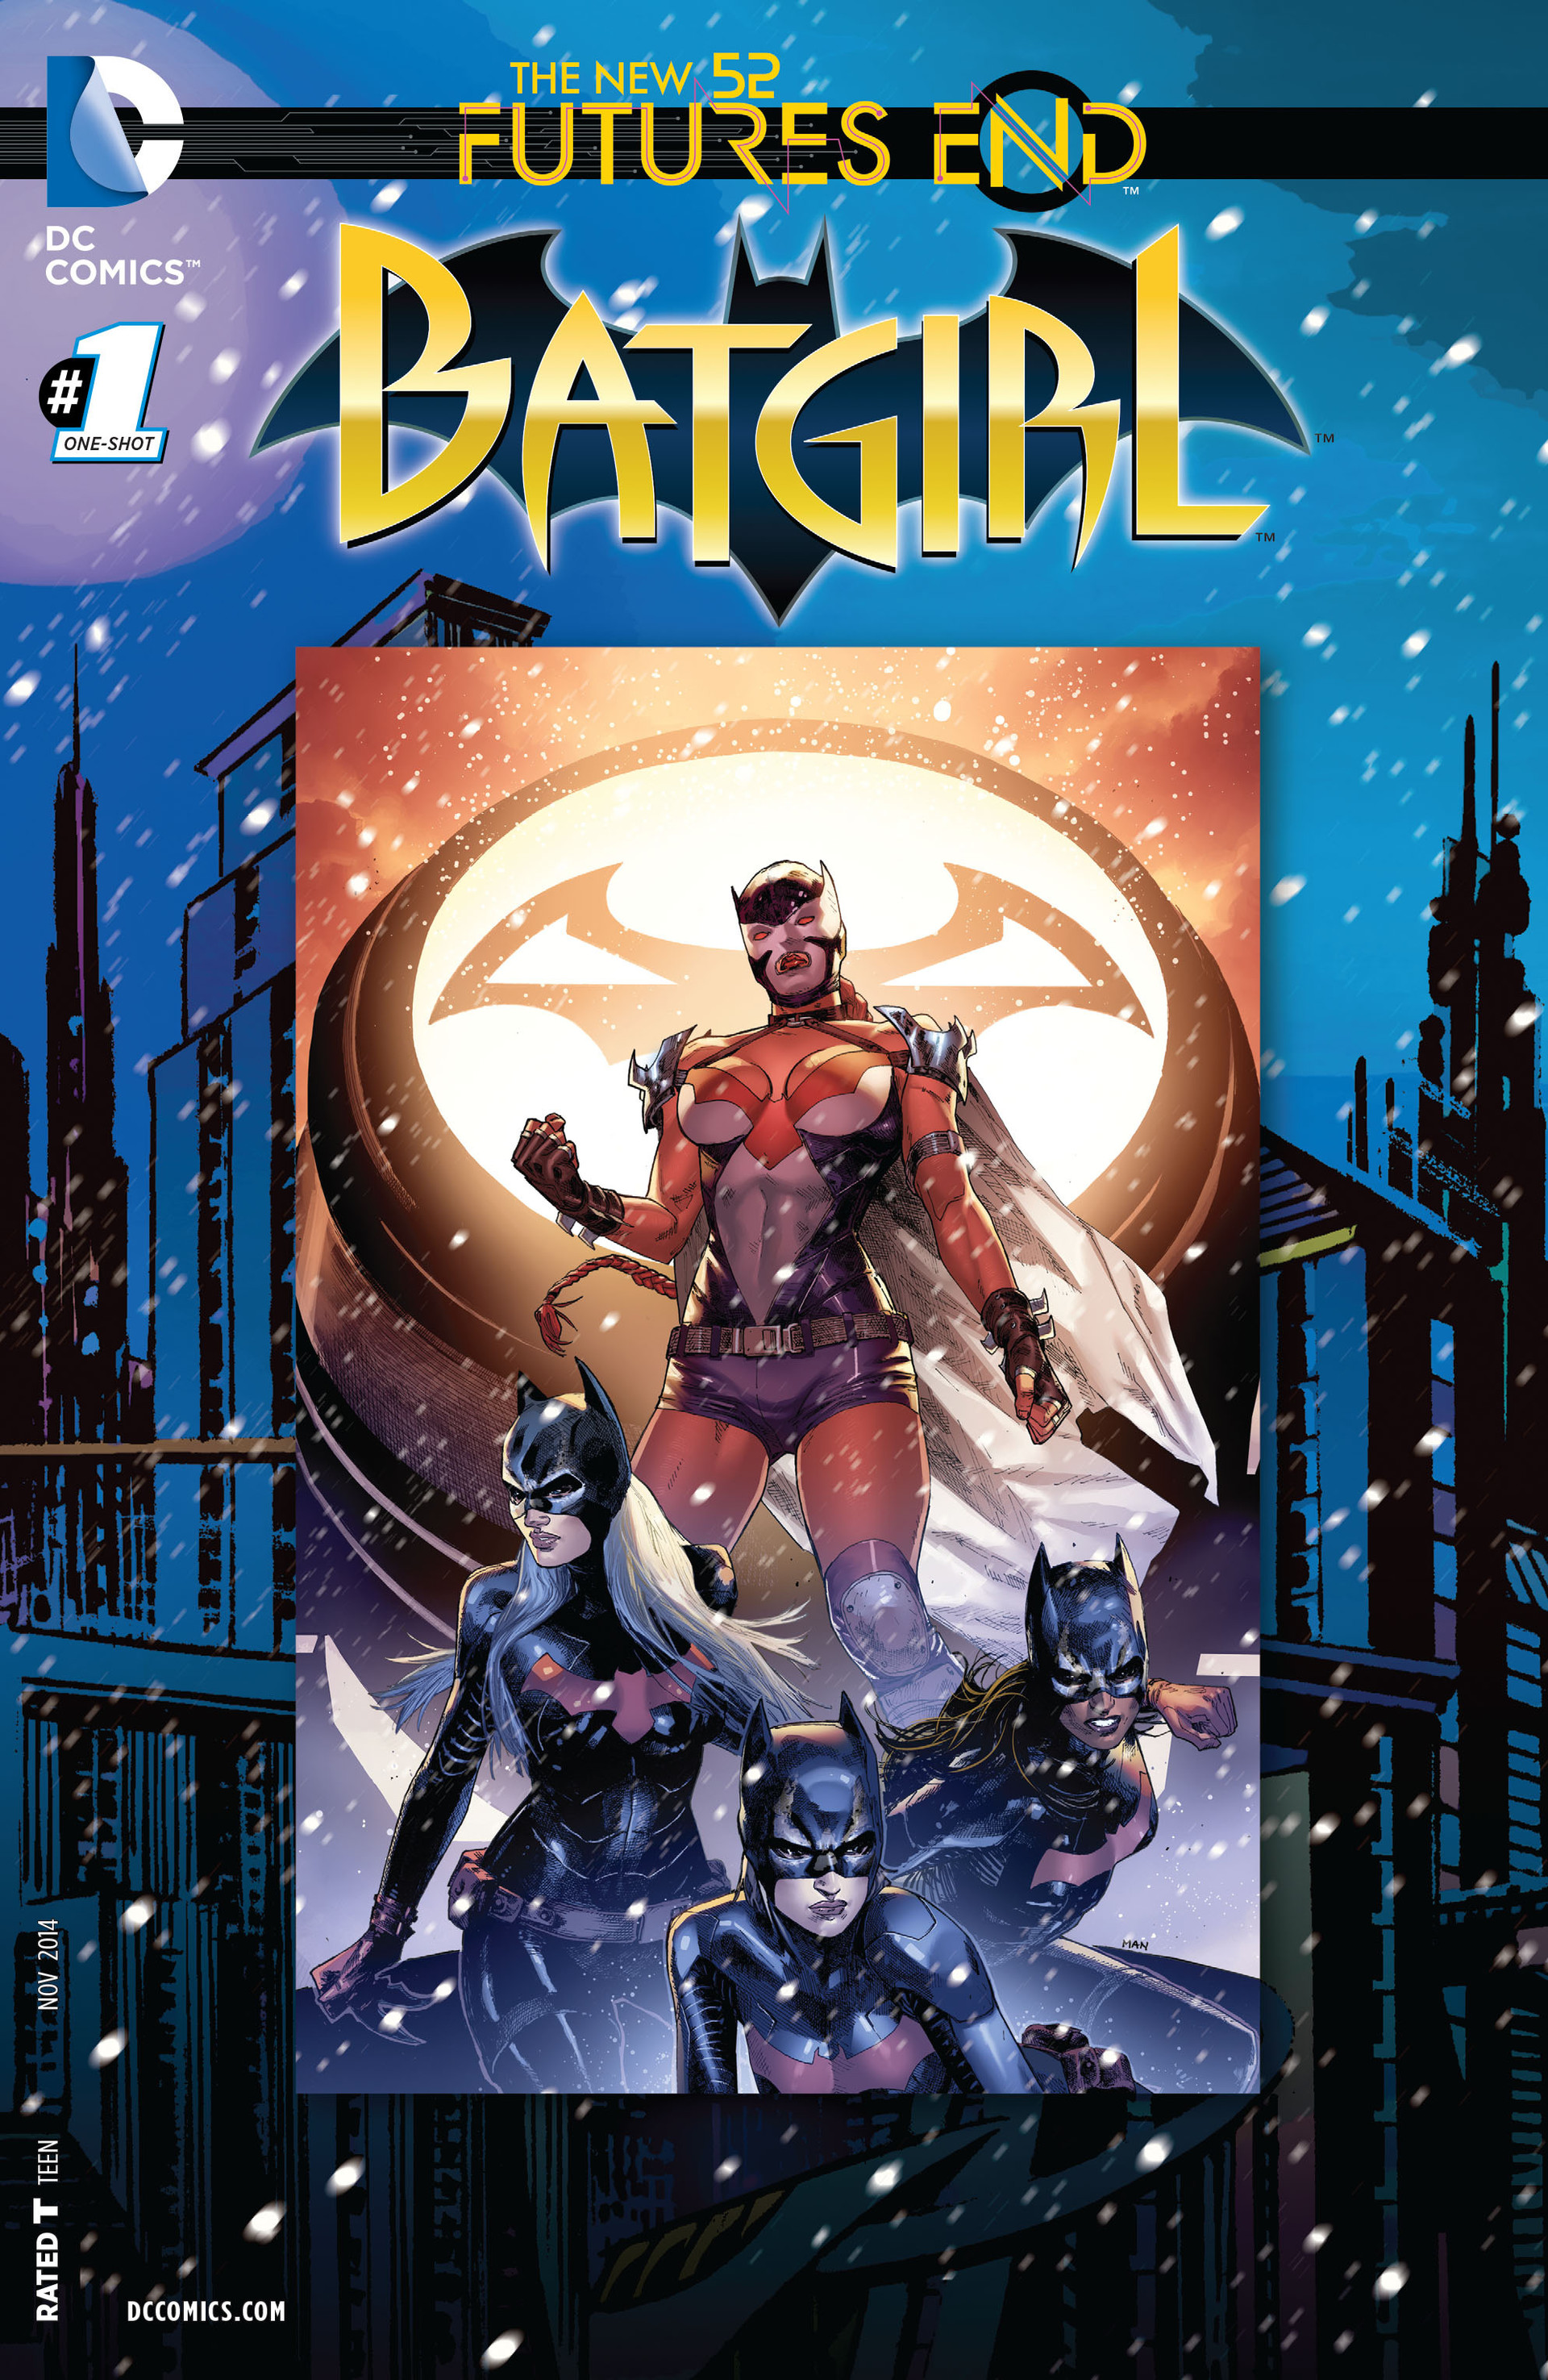 Batgirl: Futures End Full Page 1